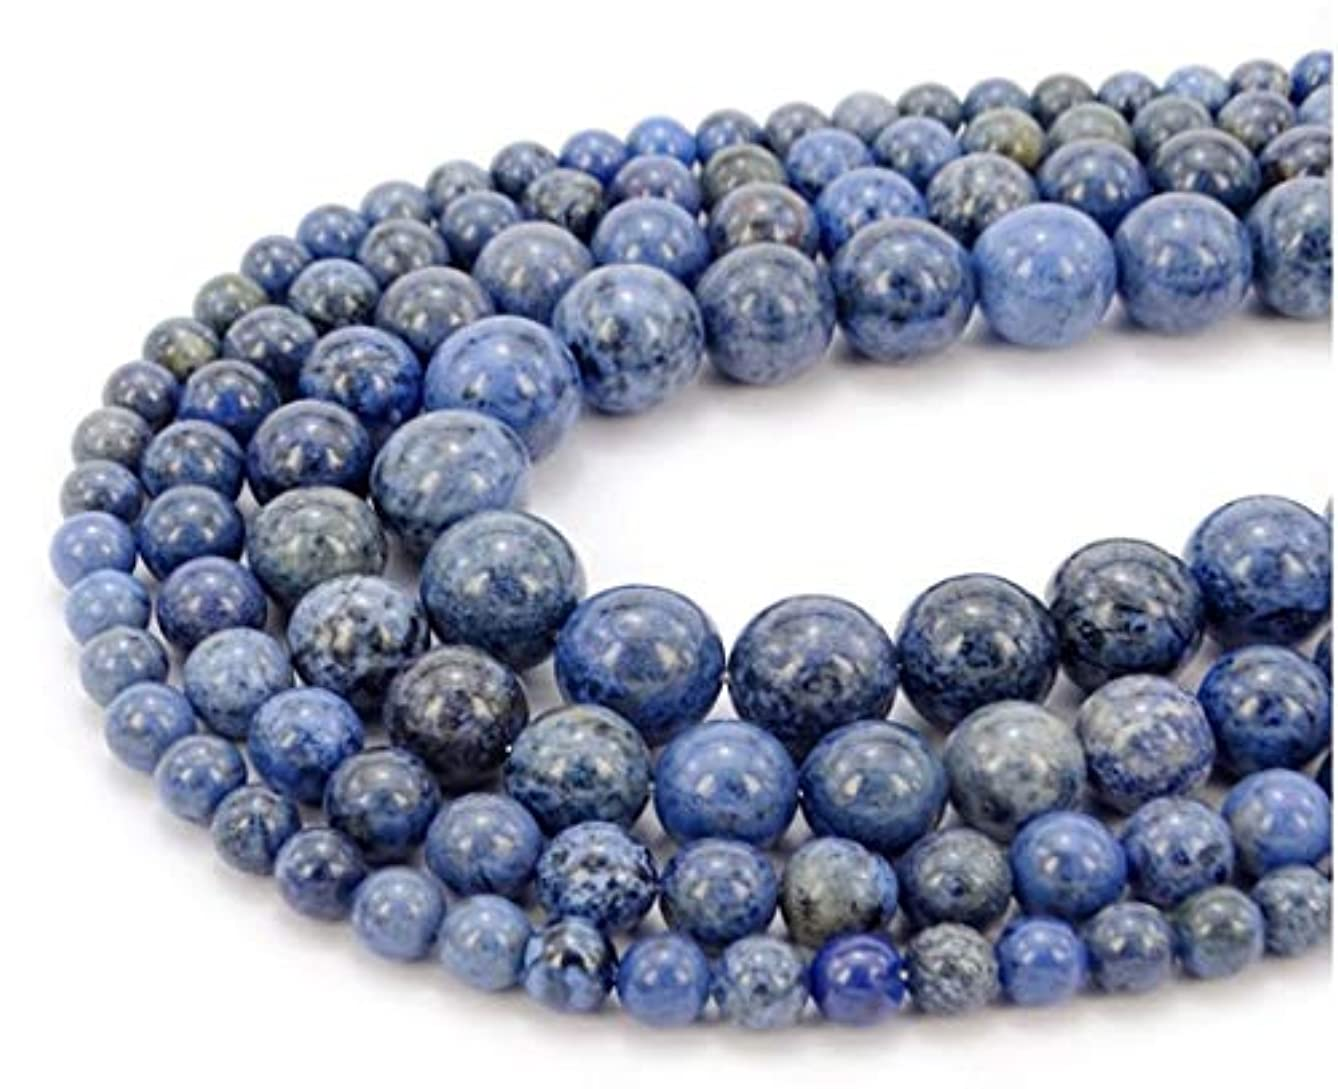 Top Quality Natural Blue Dumortierite Gemstone 4mm Round Loose Gems Stone Beads 15.5